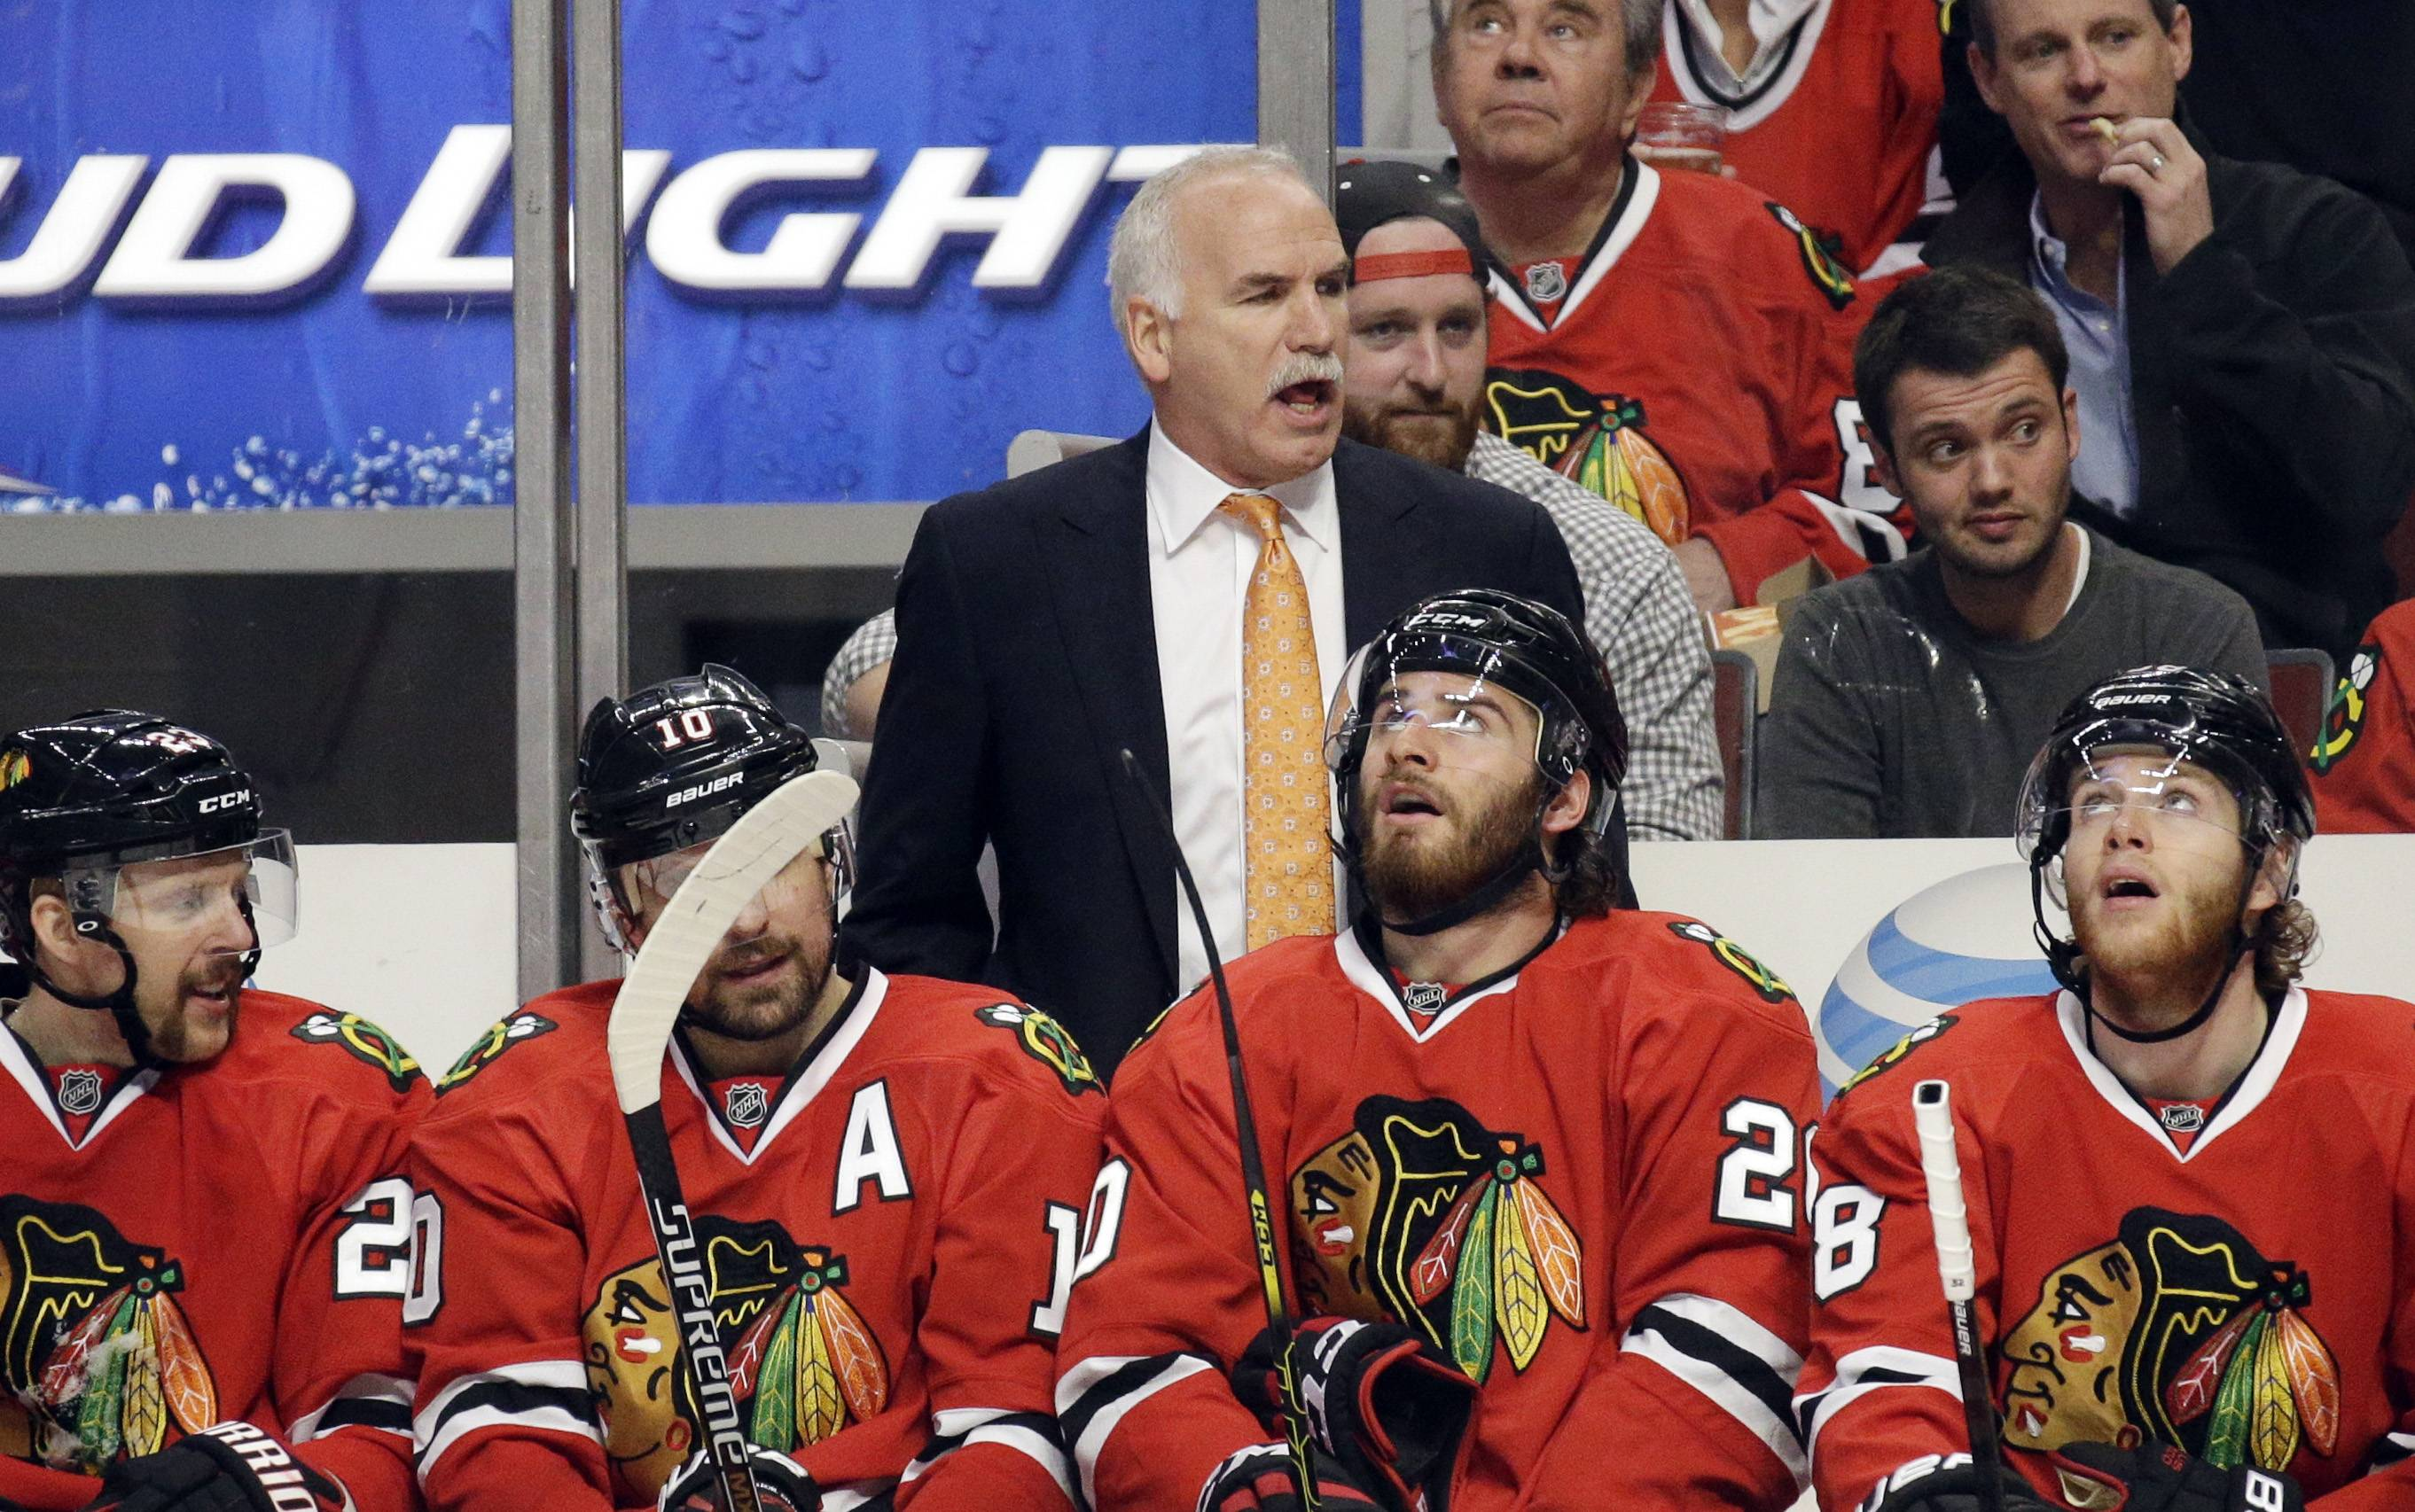 Chicago Blackhawks head coach Joel Quenneville wasn't afraid to change lines or combinations in Games 5 and 6, which is one reason the Hawks will have a Game 7 against the L.A. Kings.